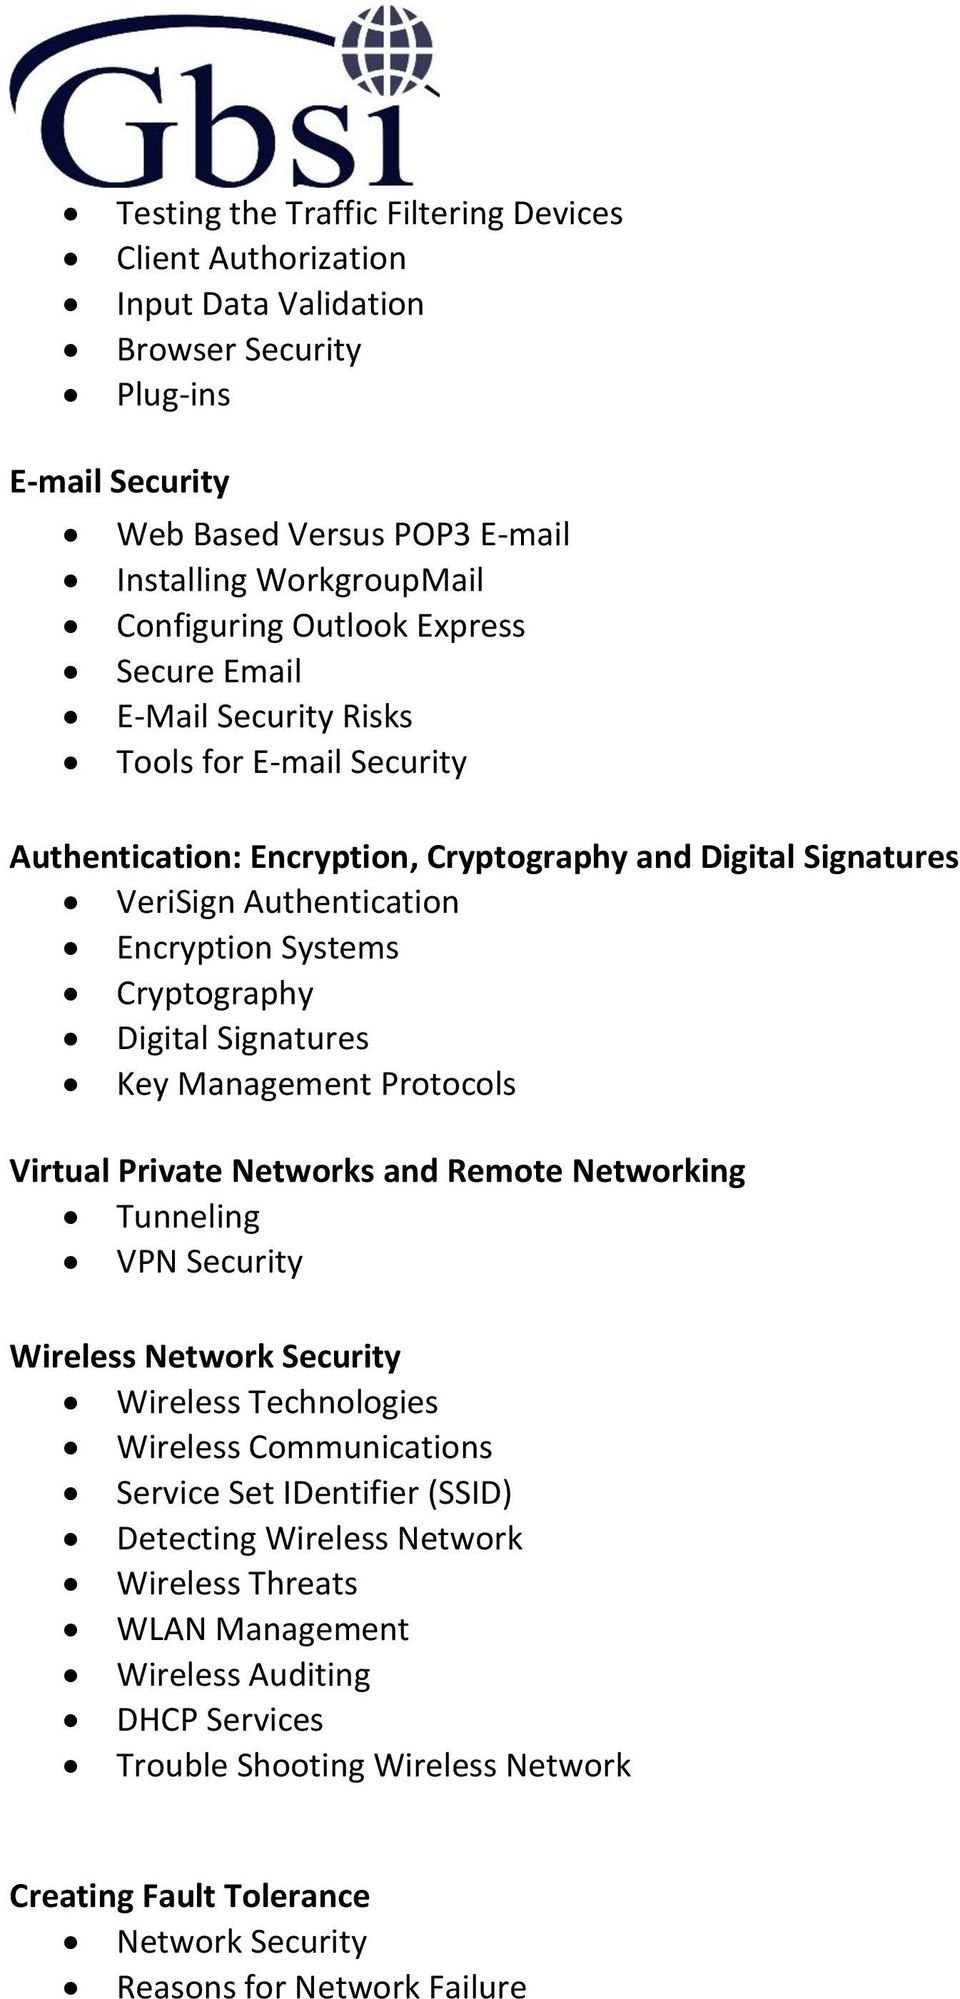 Signatures Key Management Protocols Virtual Private Networks and Remote Networking Tunneling VPN Security Wireless Network Security Wireless Technologies Wireless Communications Service Set